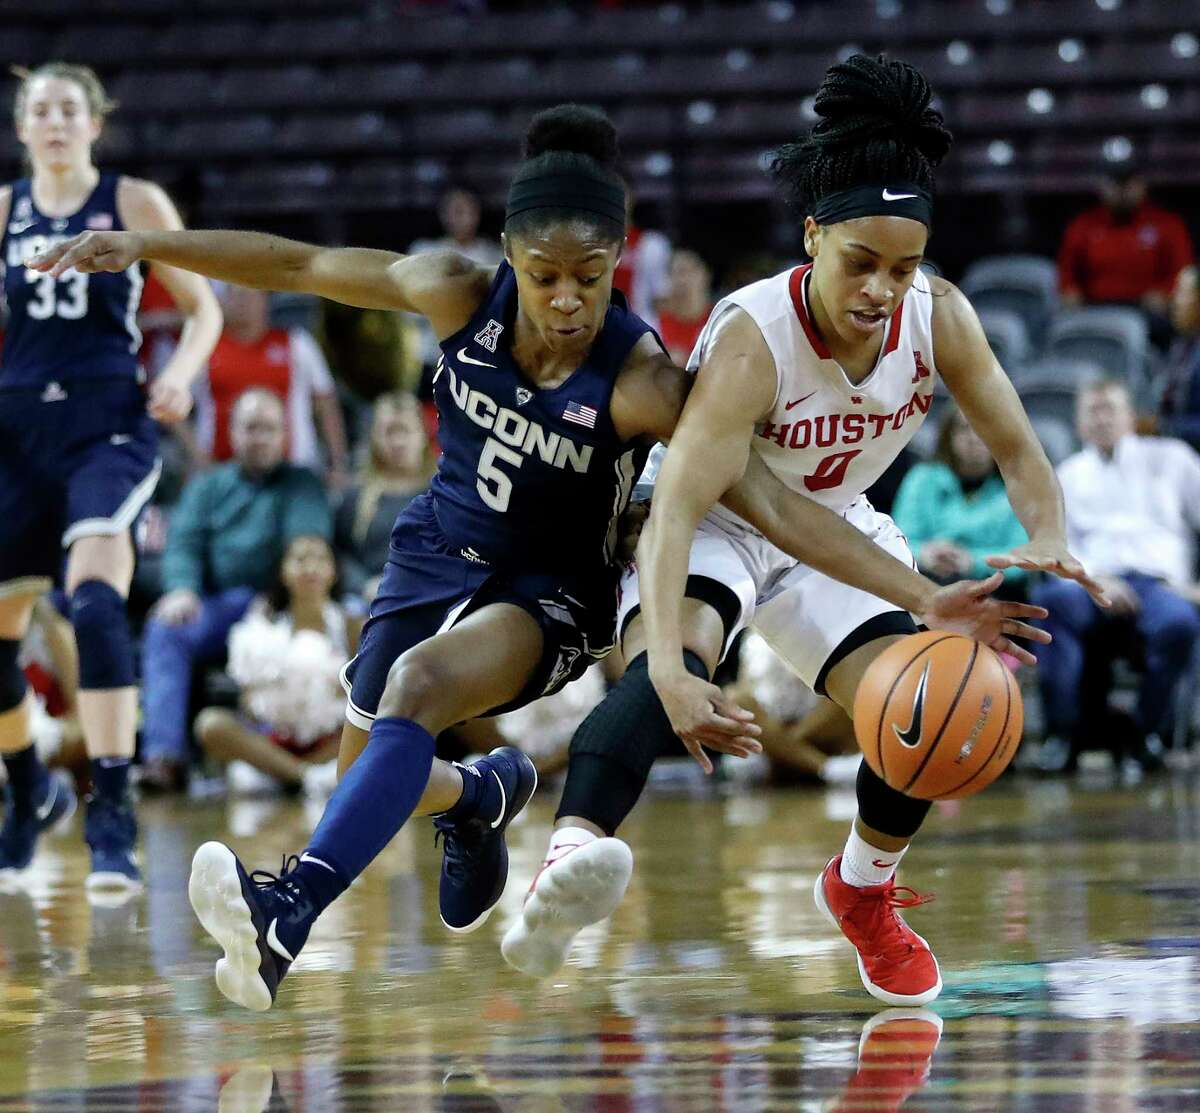 Connecticut Huskies guard Crystal Dangerfield (5) and Houston Cougars guard Angela Harris (0) both chase a loose ball during the first half of a NCAA basketball game at Texas Southern University Saturday, Jan. 13, 2018, in Houston.